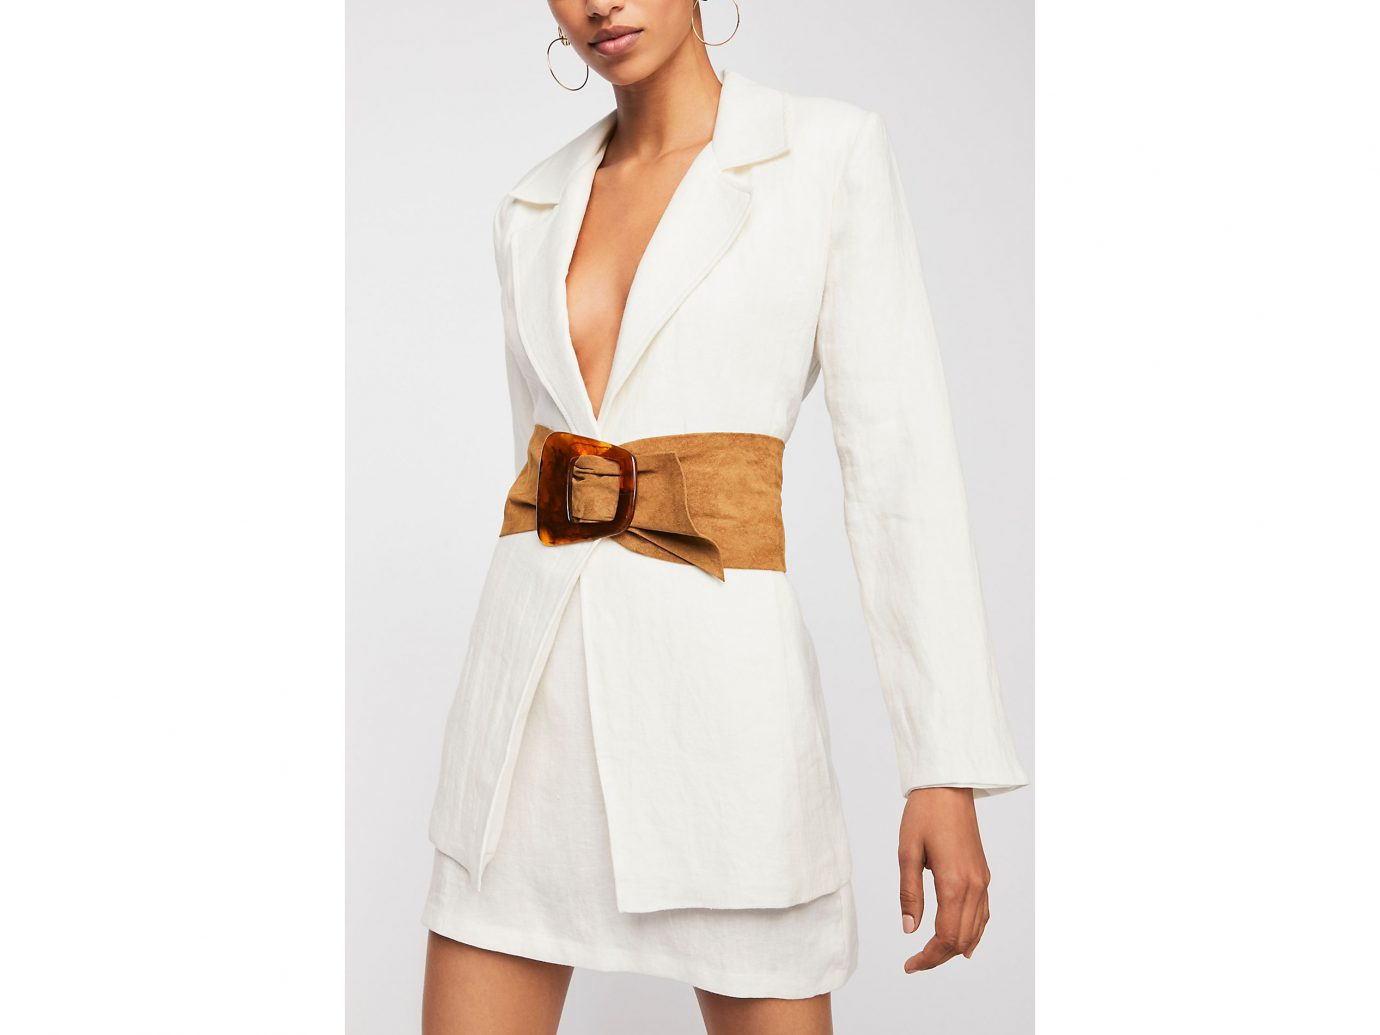 12 Ways To Tell If Your Gucci Belt Is Fake Her Closet Image >> 12 Best Belts To Add To Your Wardrobe This Summer Jetsetter